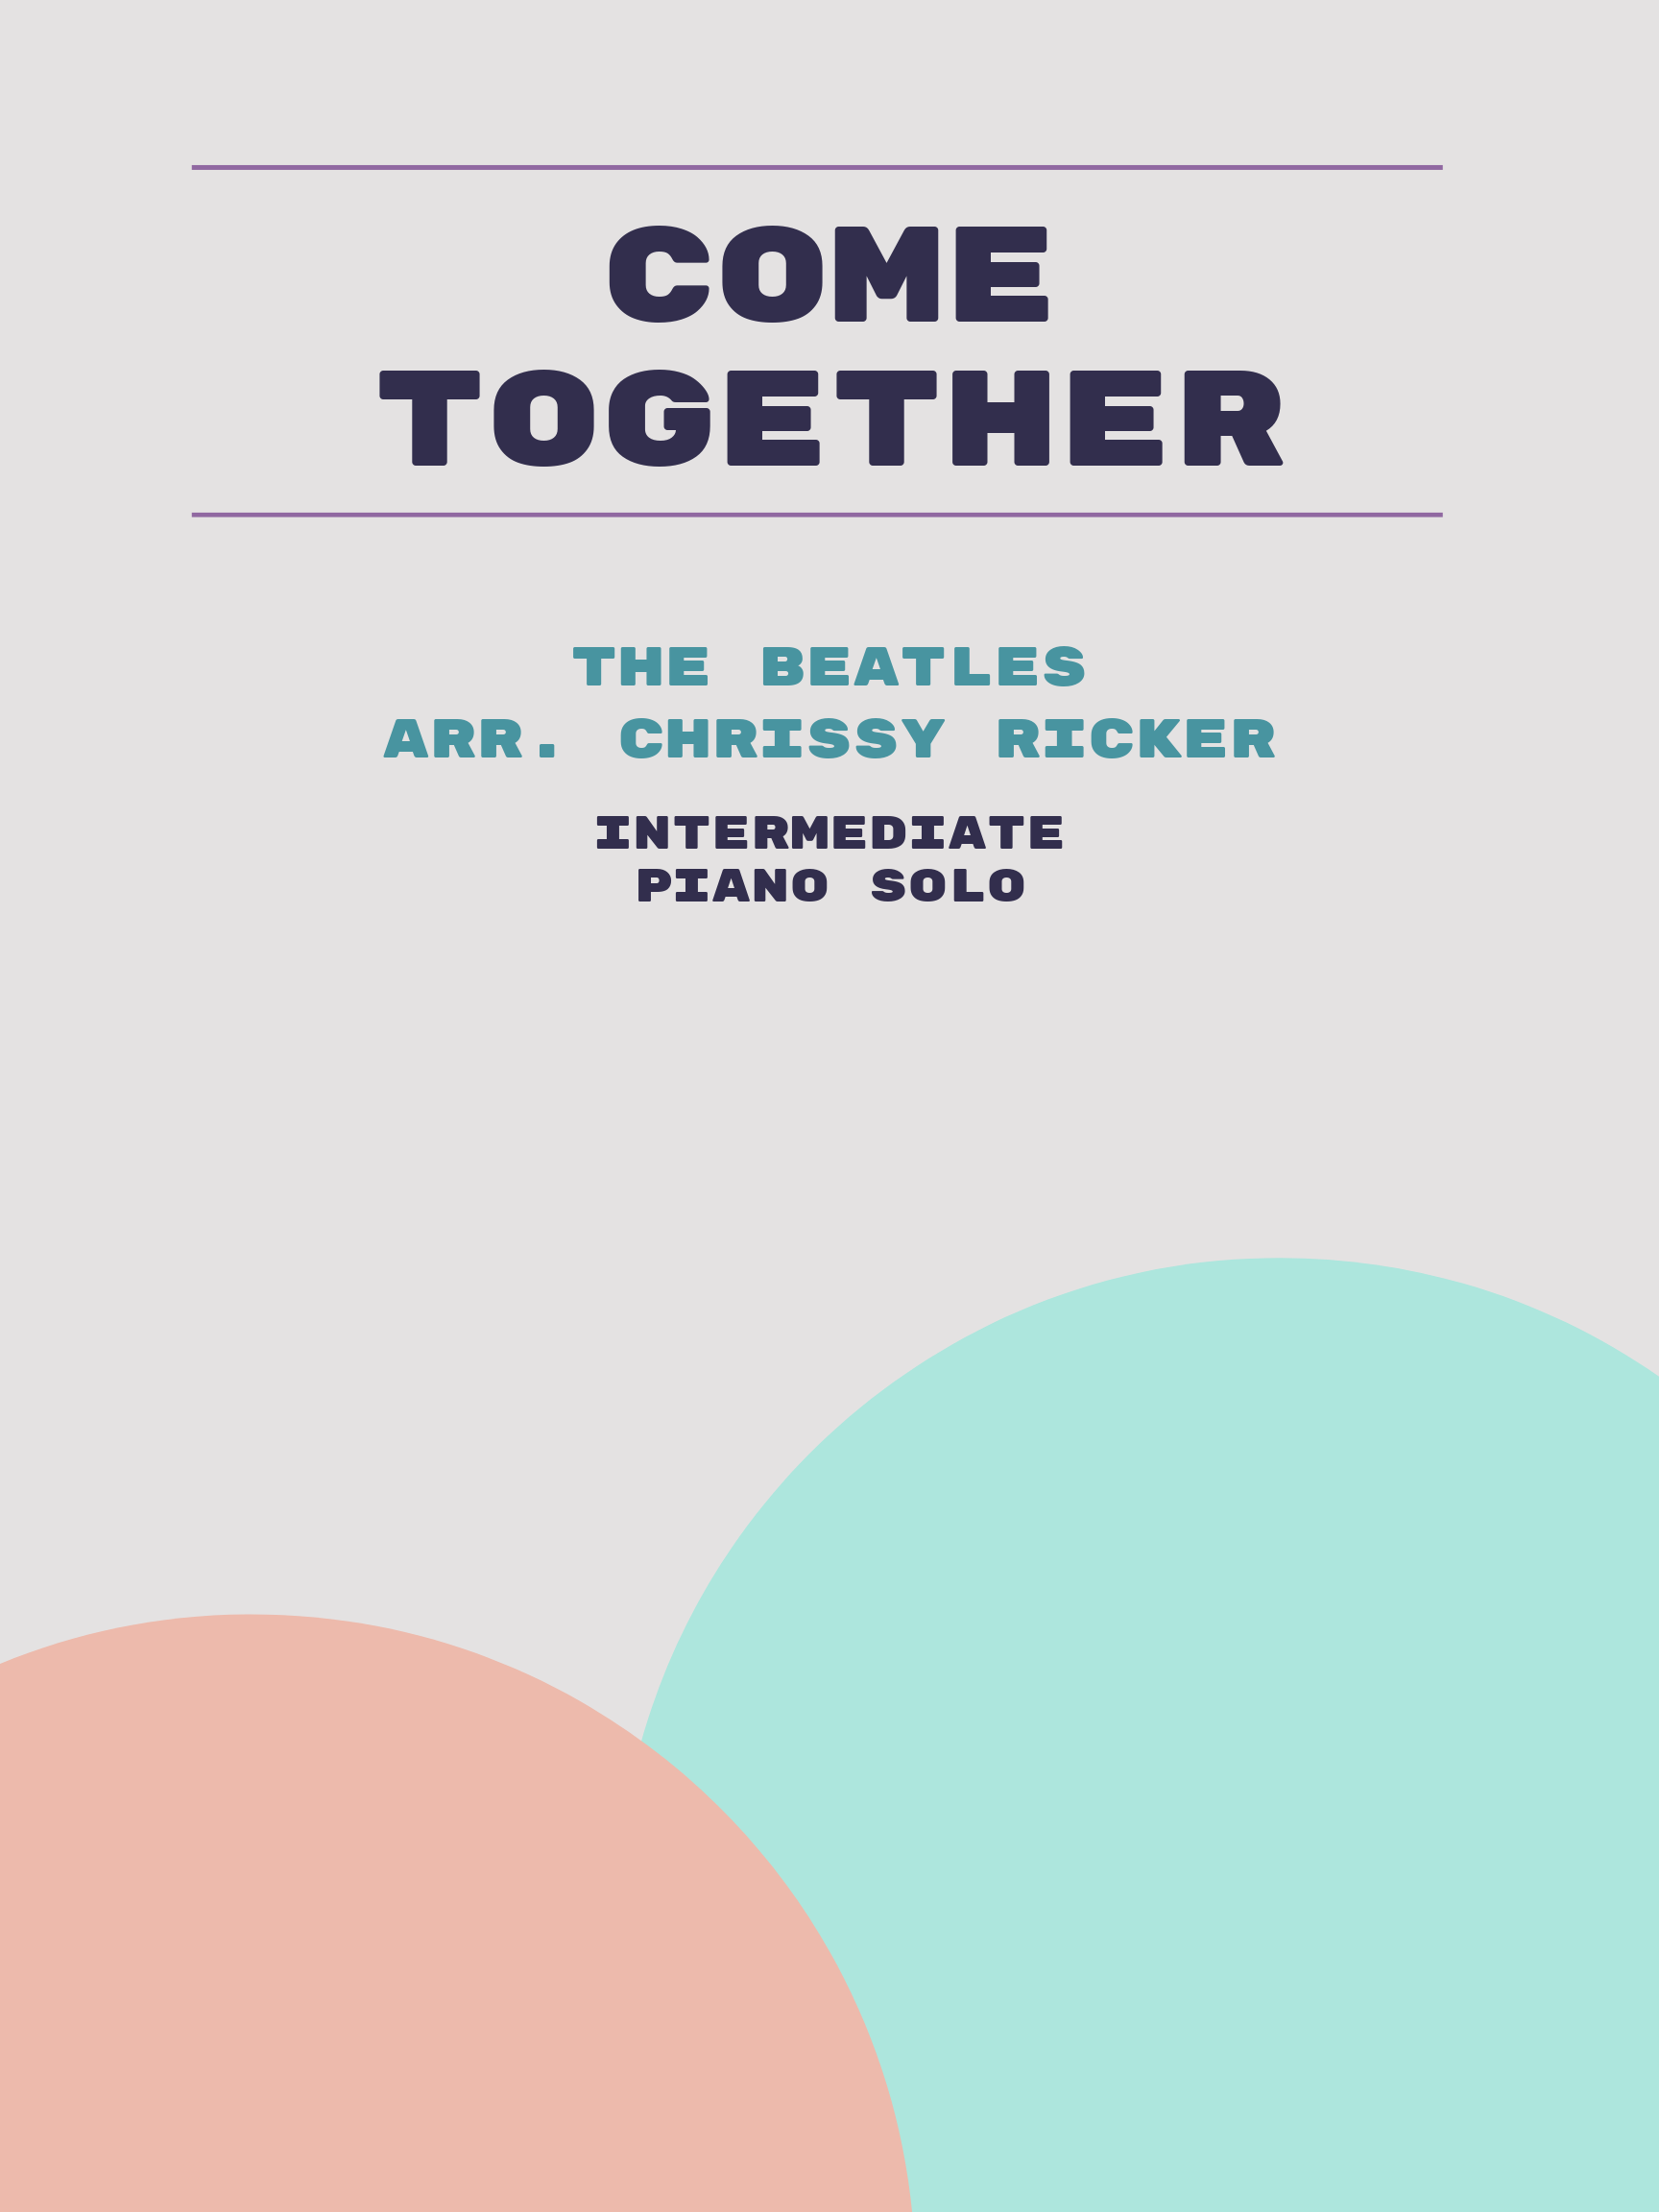 Come Together by The Beatles